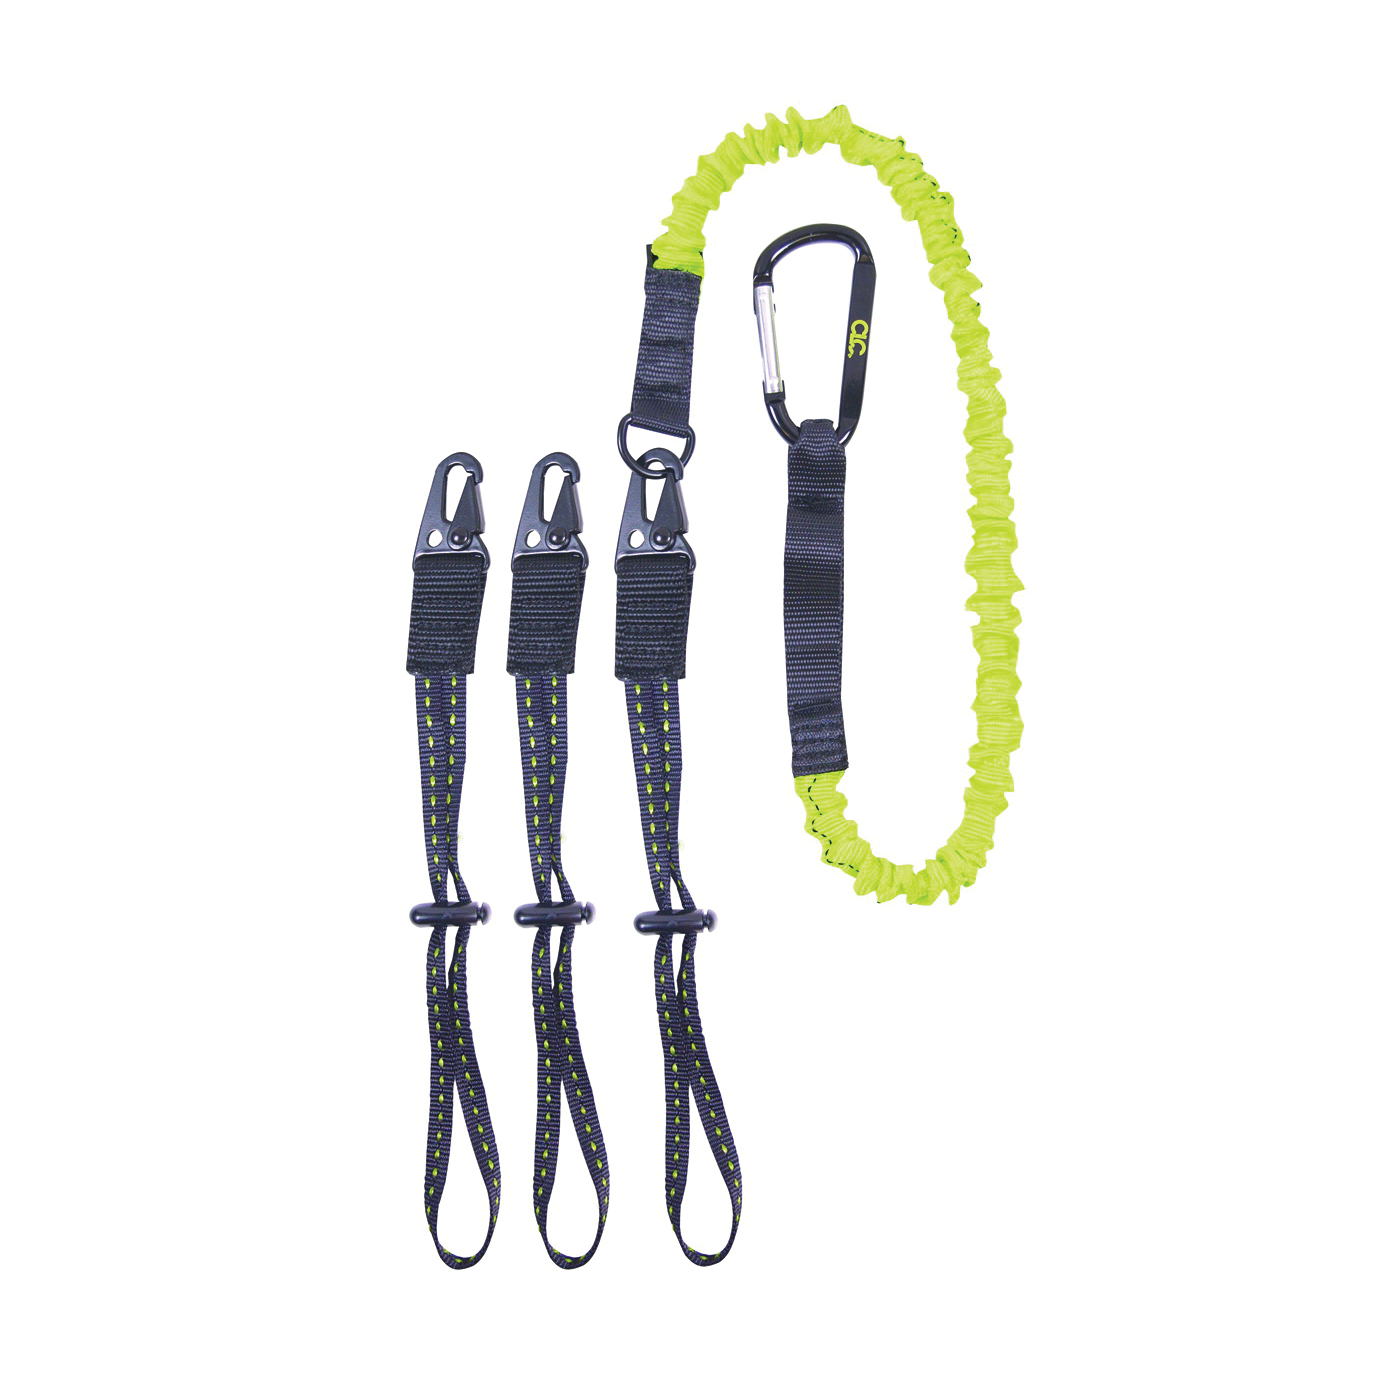 Picture of CLC GEAR LINK 1025 Tool Lanyard, 41 to 56 in L, 6 lb Working Load, Carabiner End Fitting